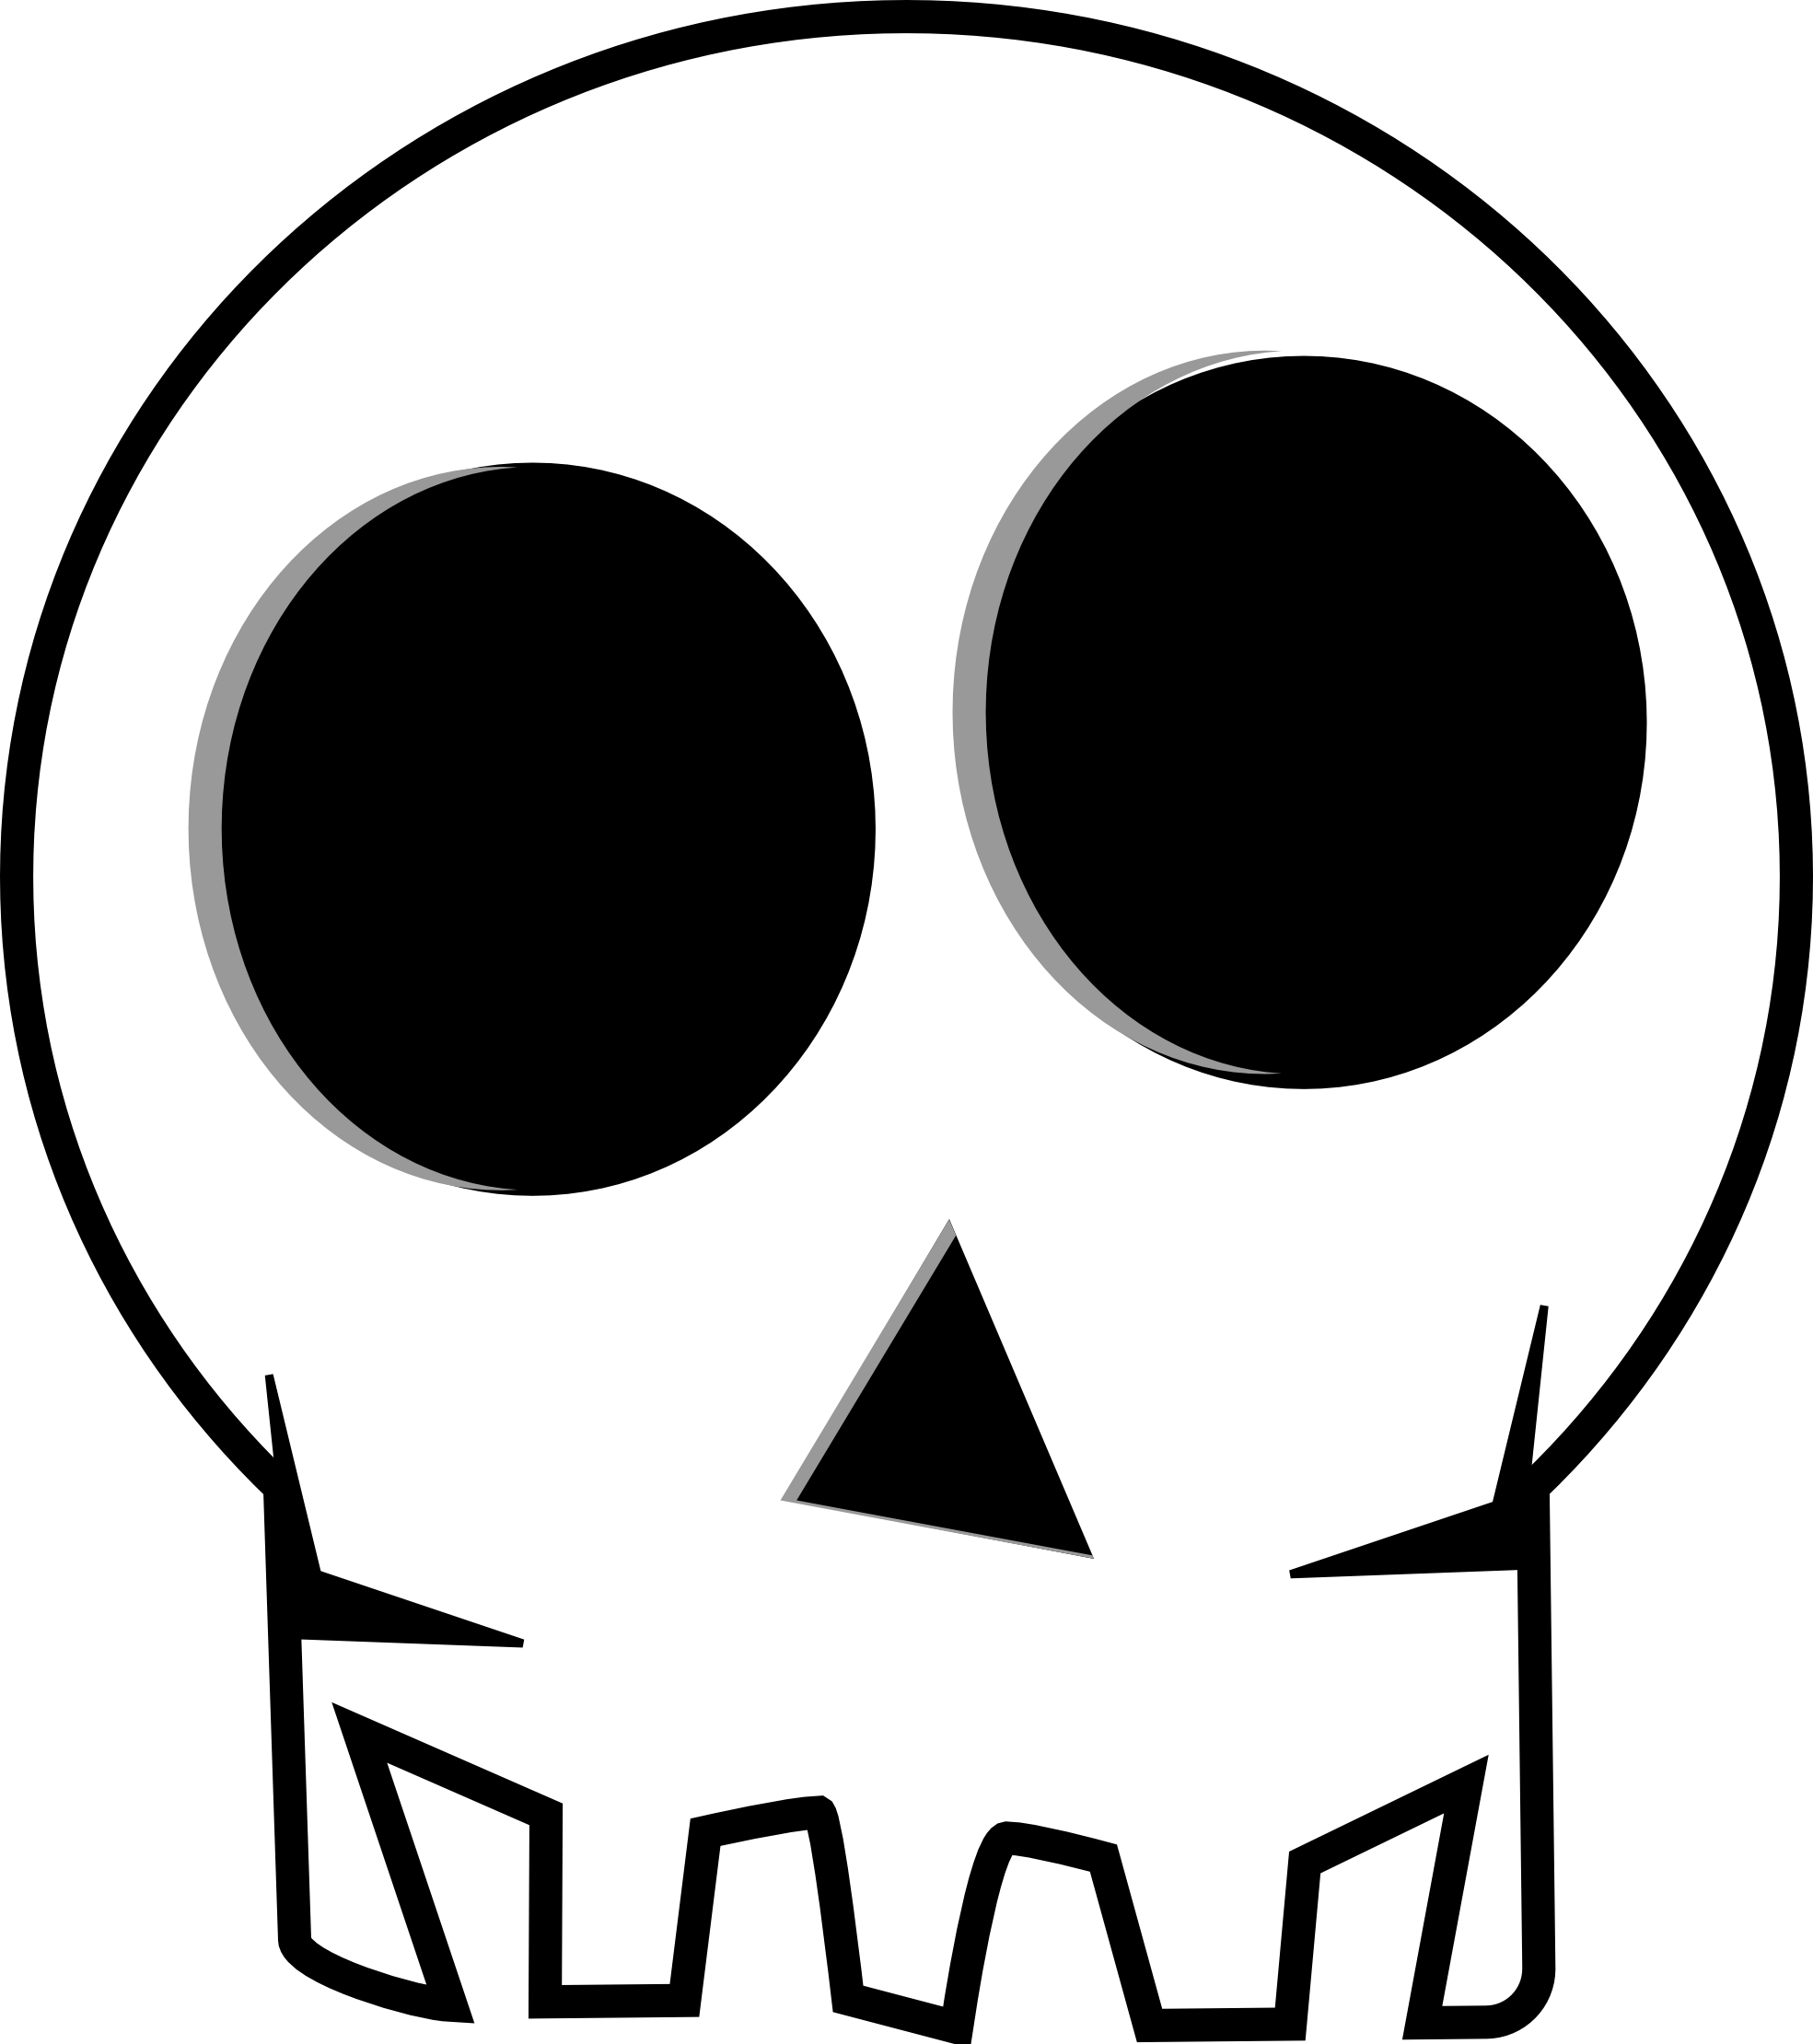 Skull comic clipart clip freeuse stock Cartoon Skeleton Clipart | Free download best Cartoon ... clip freeuse stock